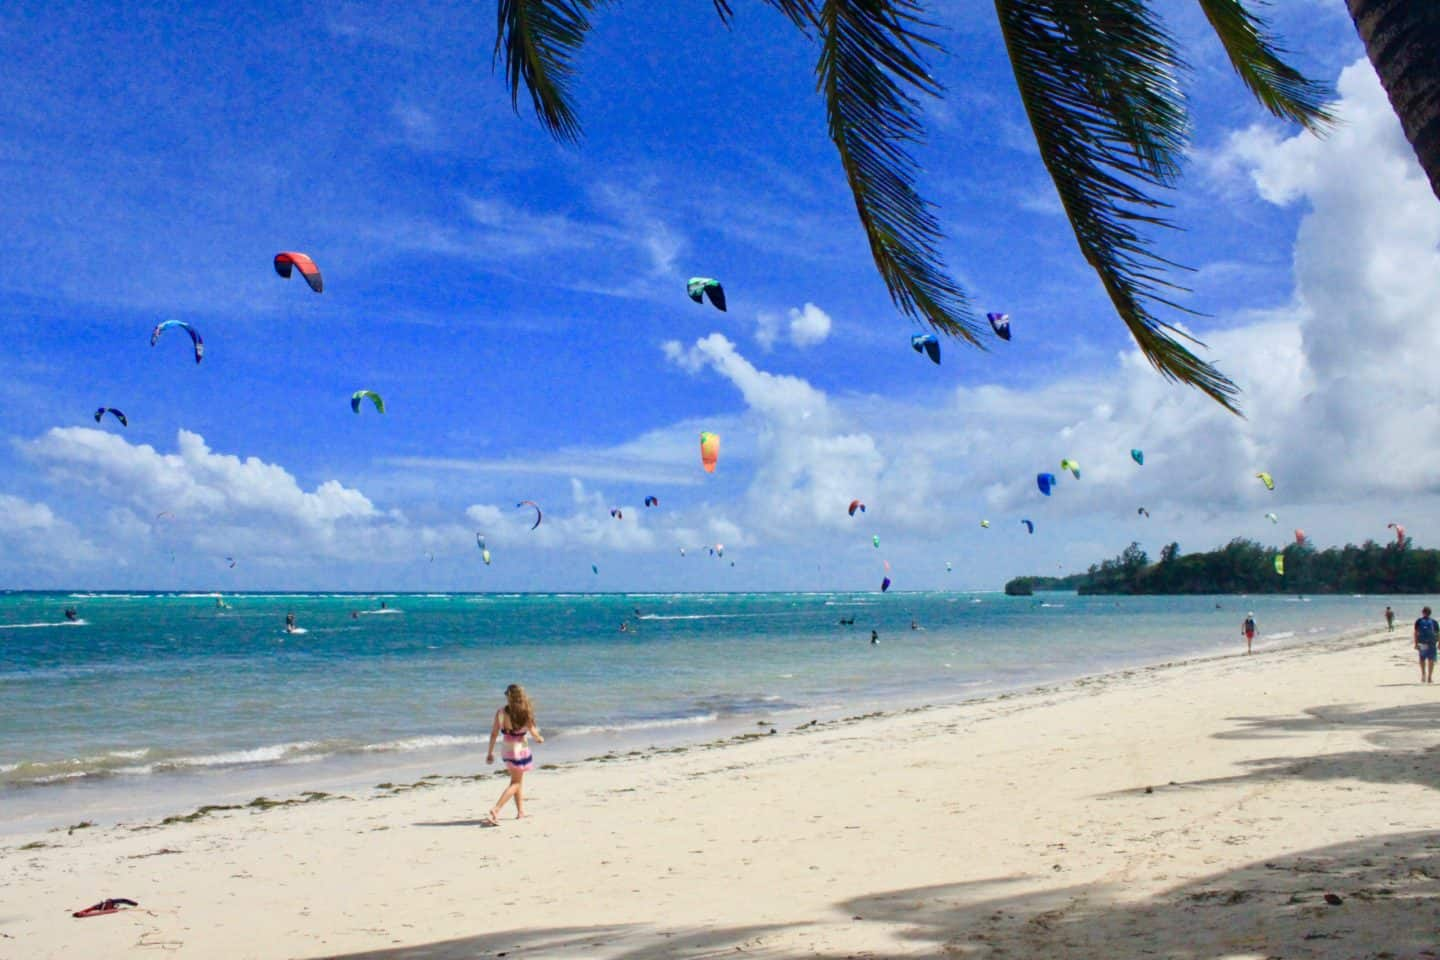 Watching the kitesurfers in Boracay